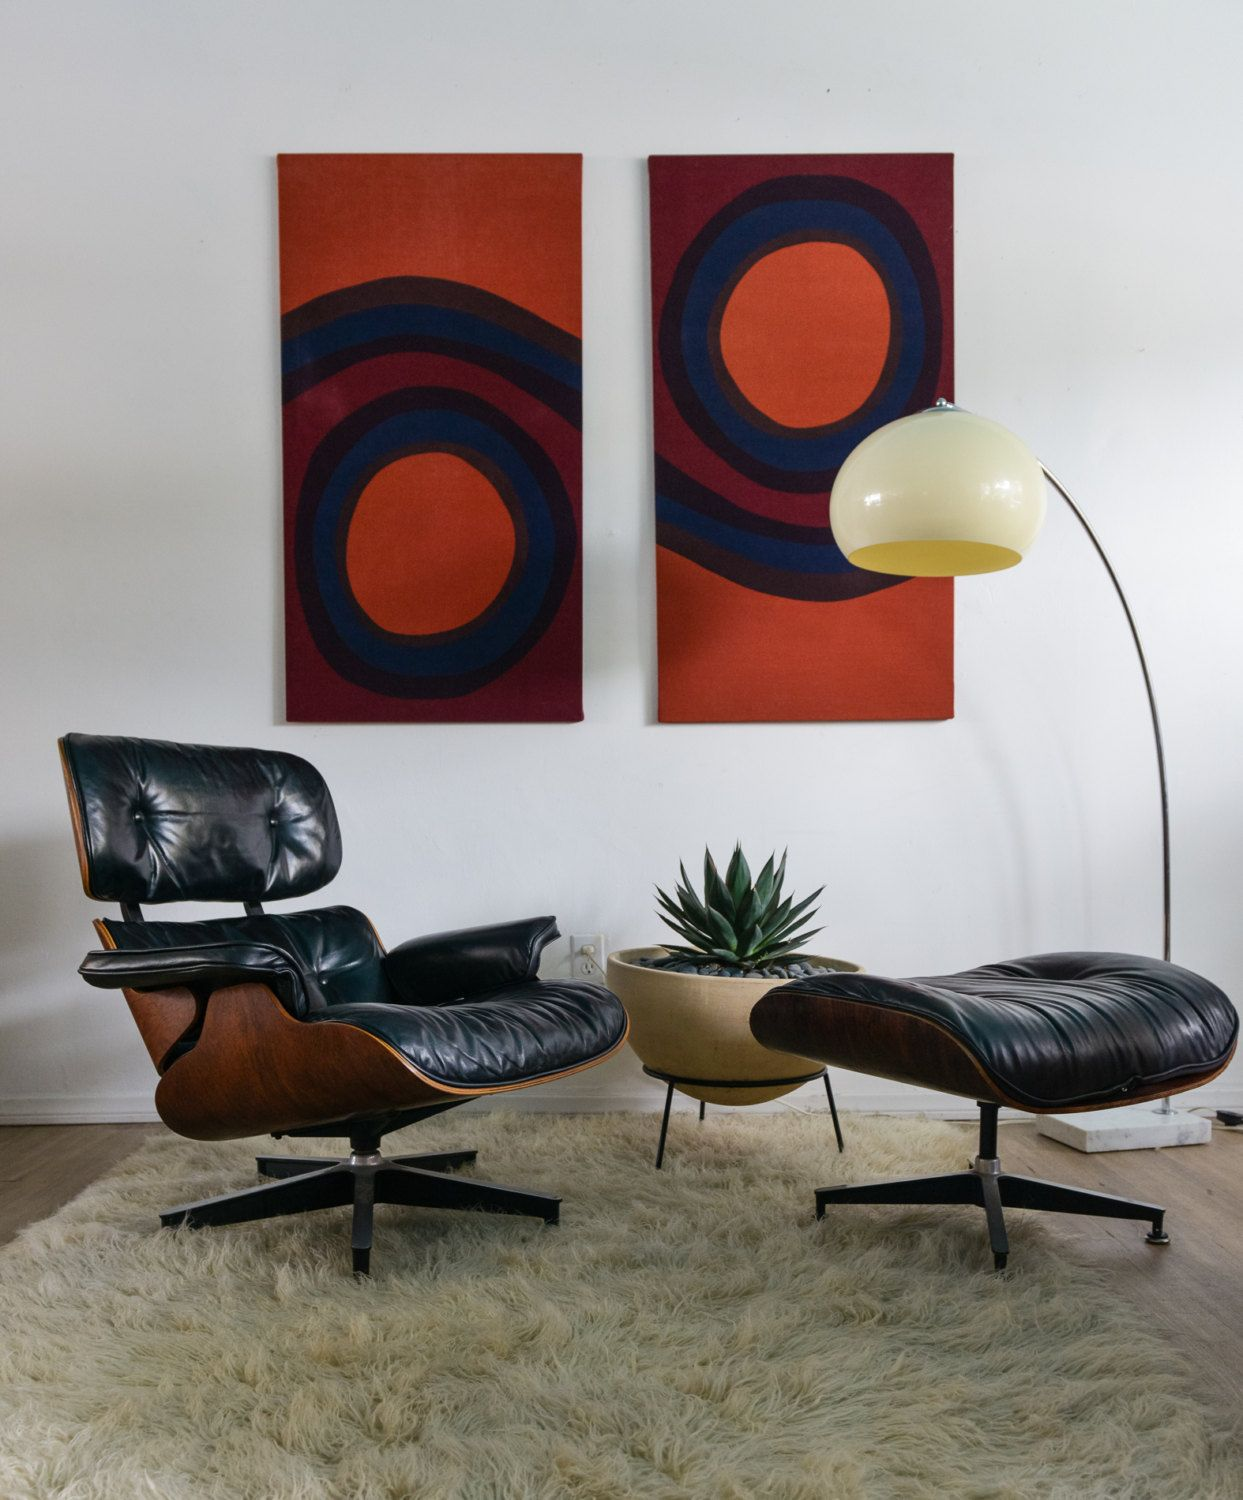 First+Generation+Eames+670+Rosewood+Lounge+Chair+by+TheModernVault,+$7,495.00  Now THAT'S  A CHAIR!!!  Wow!